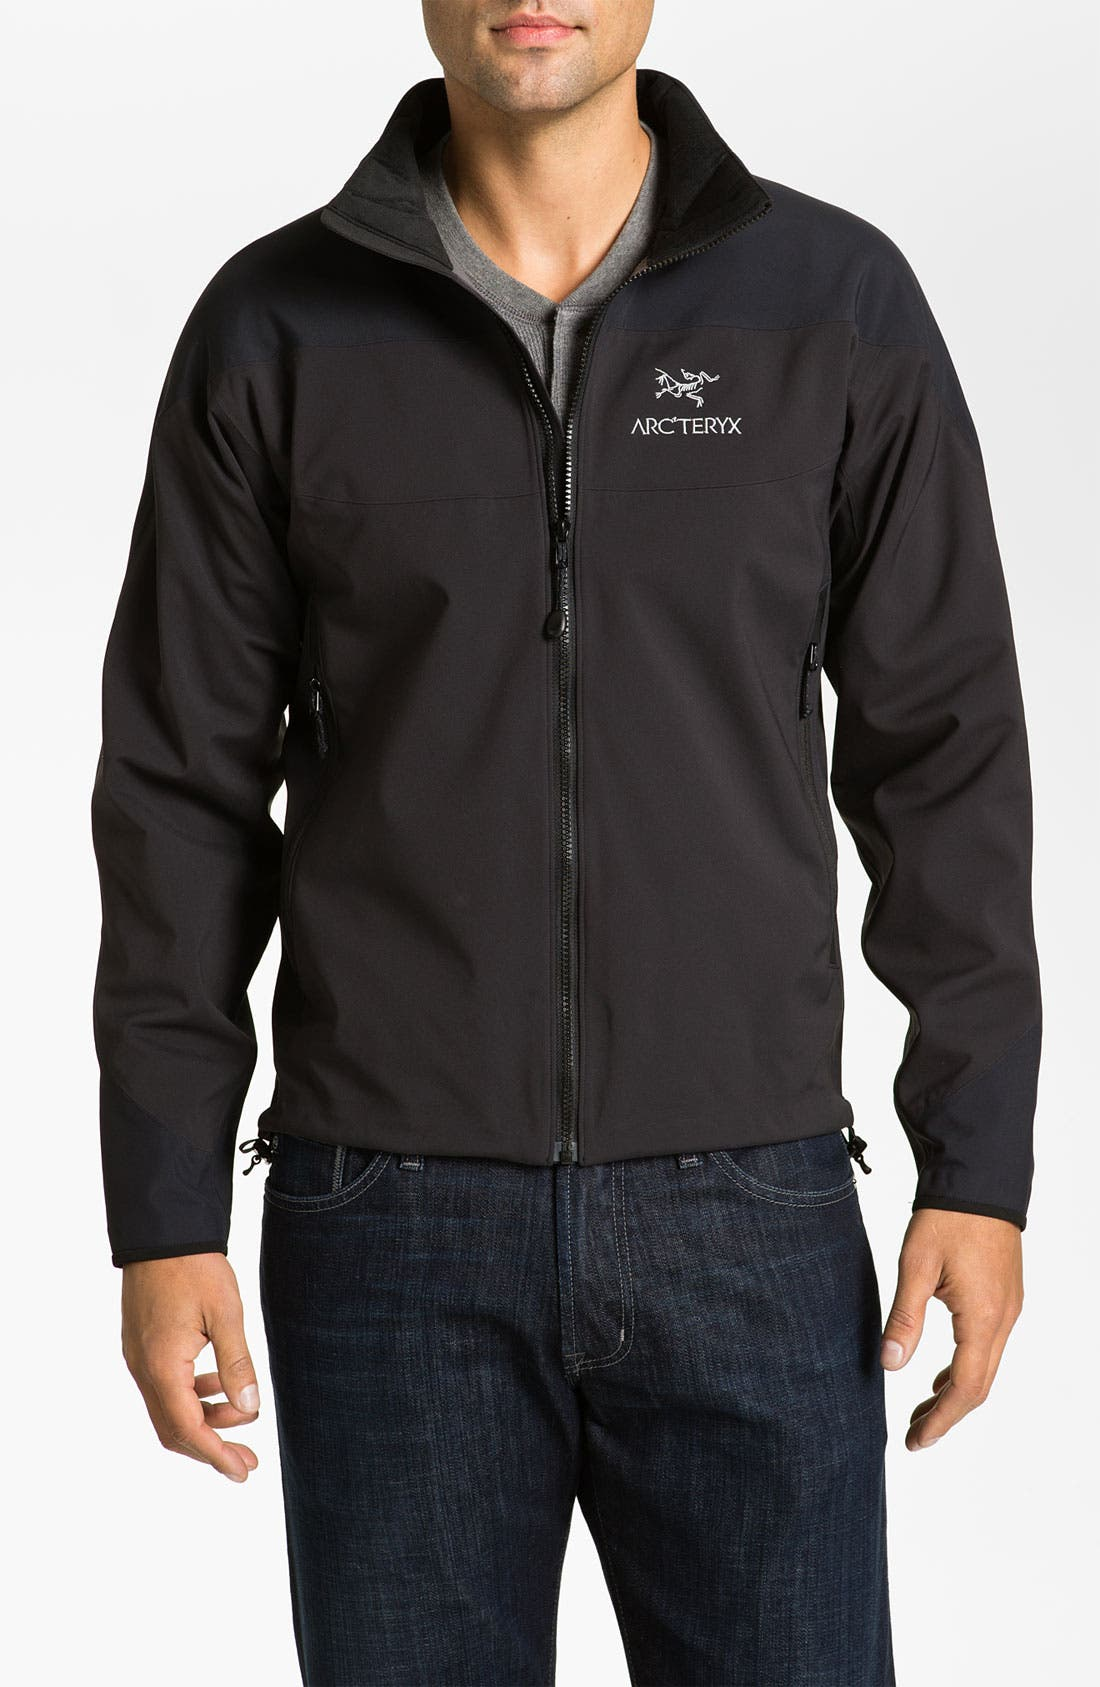 Alternate Image 1 Selected - Arc'teryx 'Venta AR' Athletic Fit Soft Shell Jacket